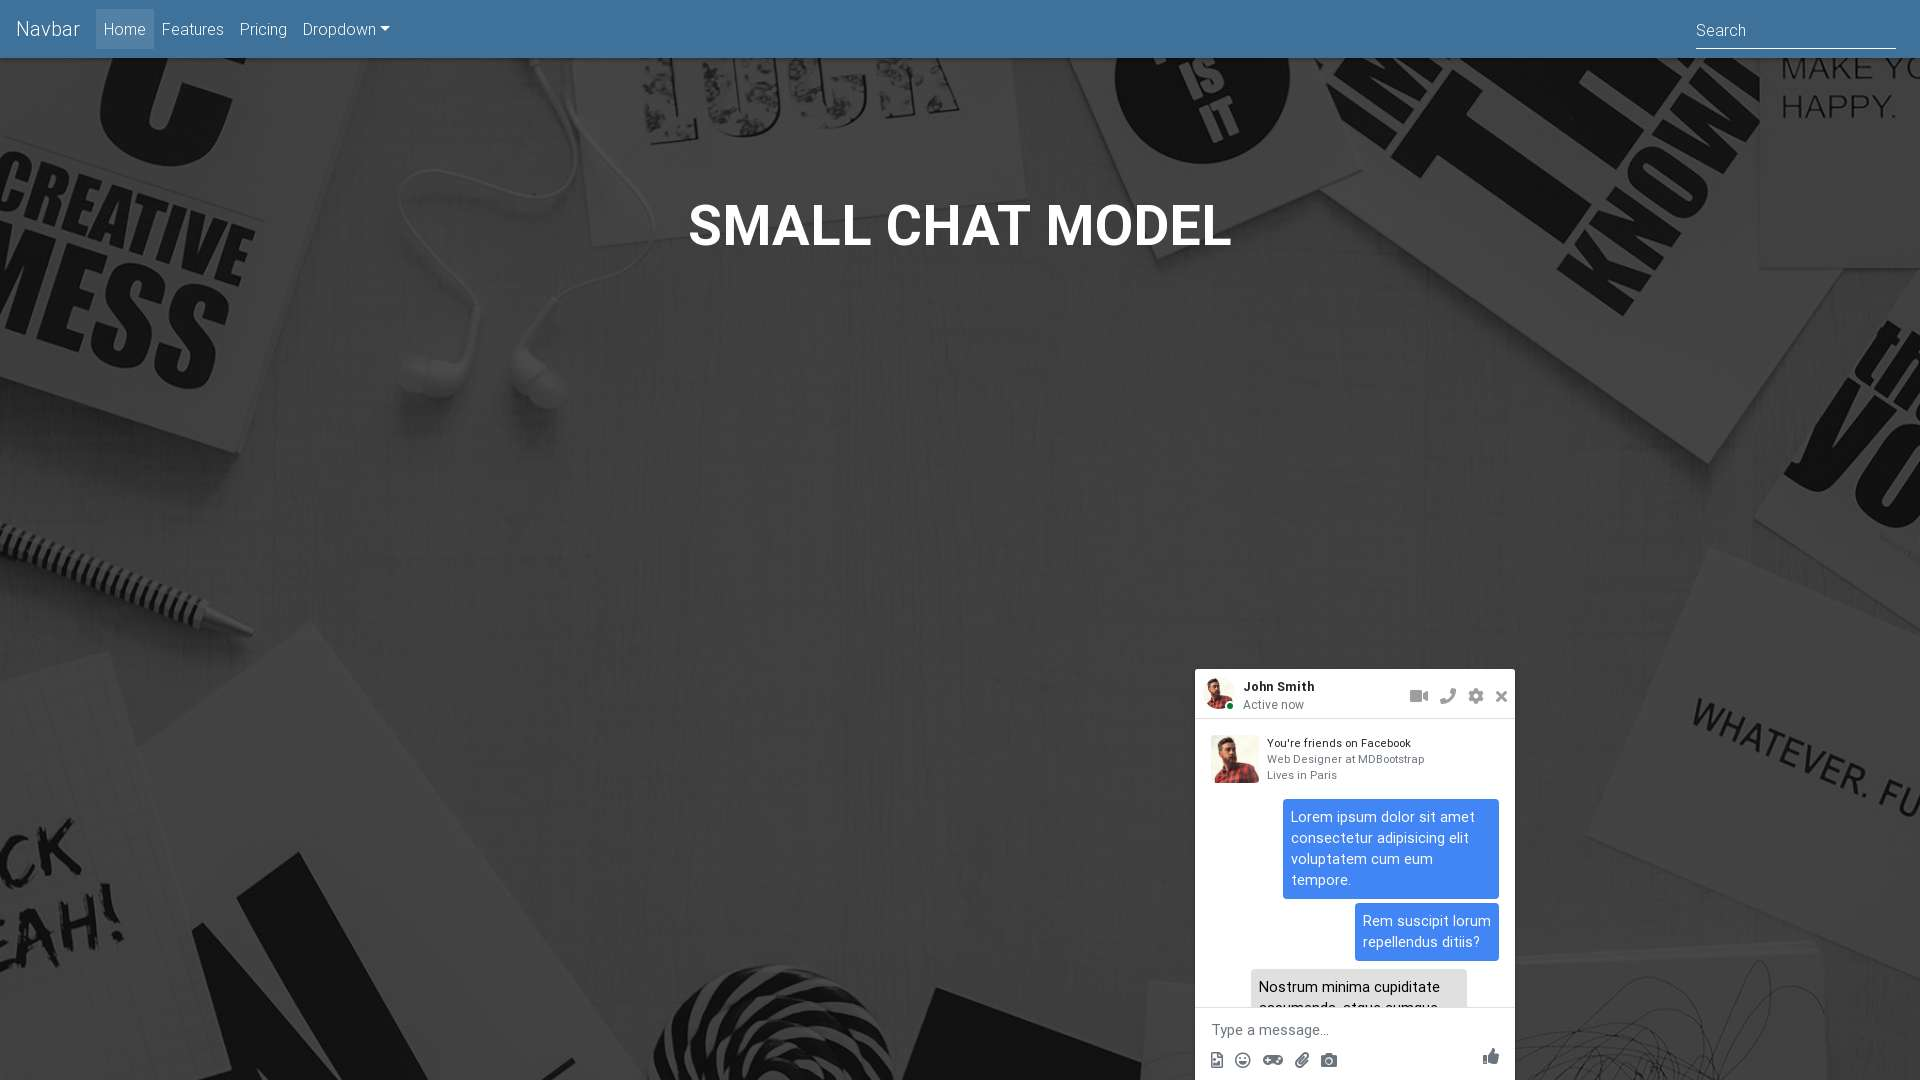 Forked from - Small chat - model